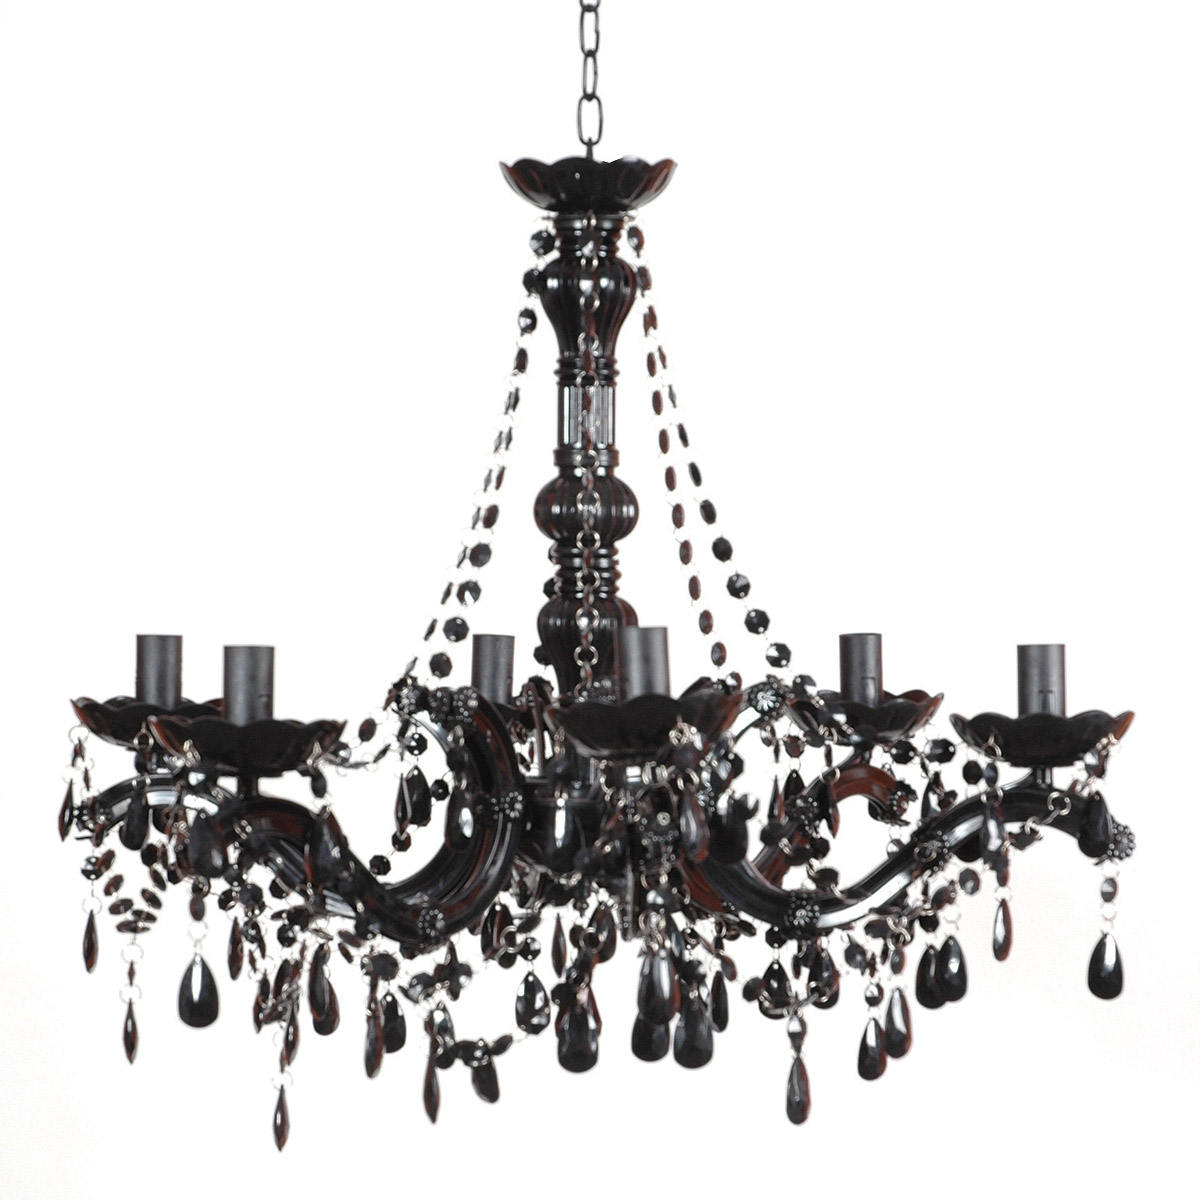 Black Chandeliers For And Chandelier Bedroom Modern Crystal Home Intended For Black Chandelier (Image 6 of 15)